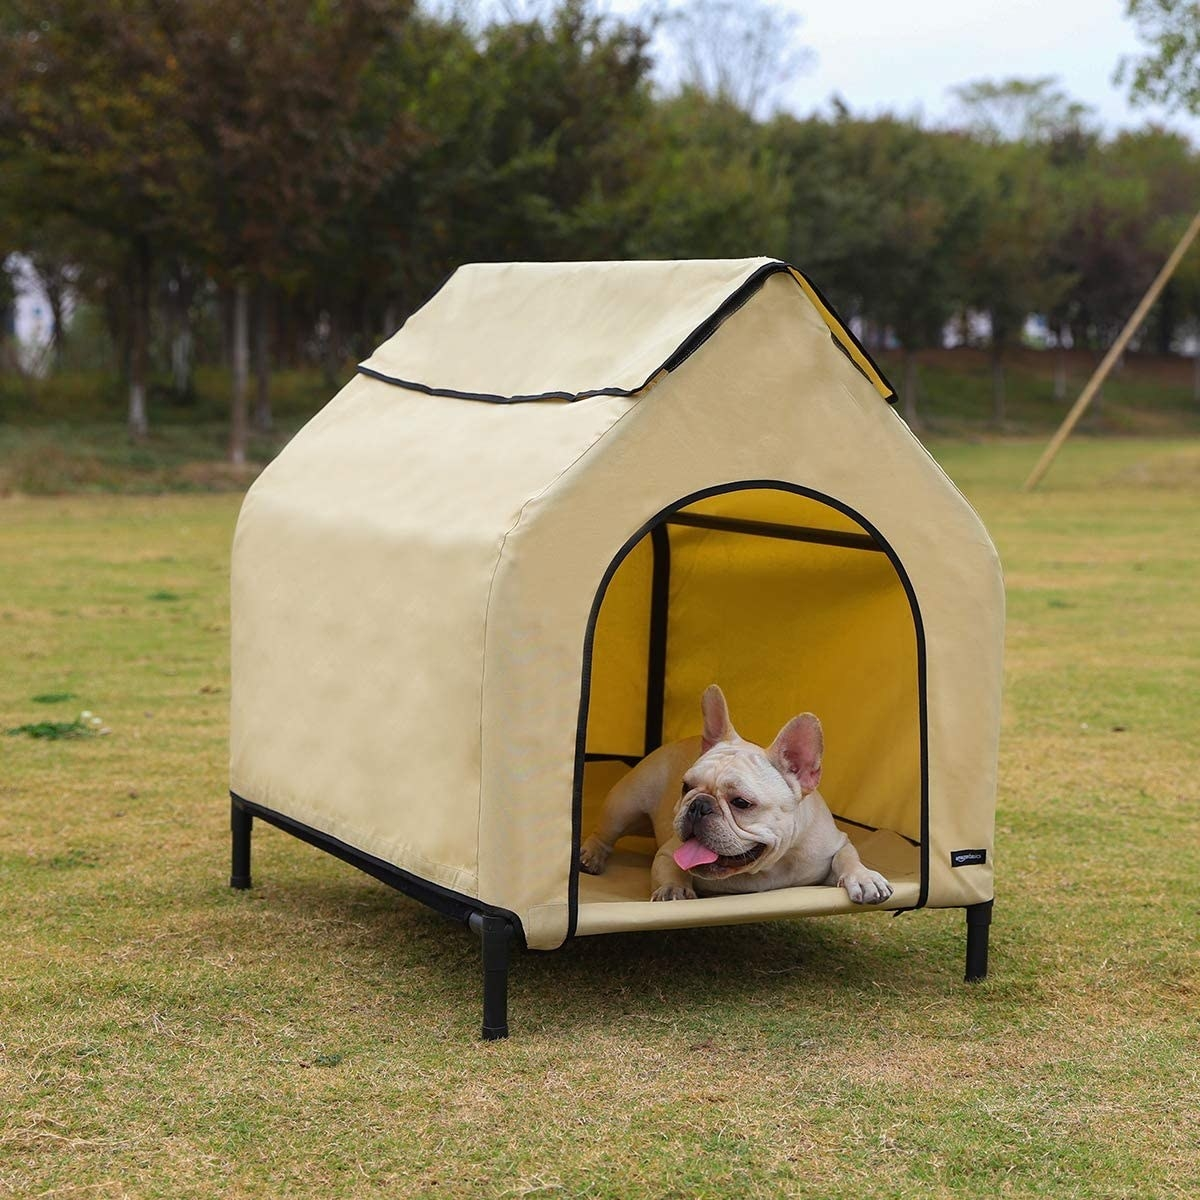 A lifestyle shot of the triangular, elevated dog bed with canvas covering and a French bulldog chilling out inside